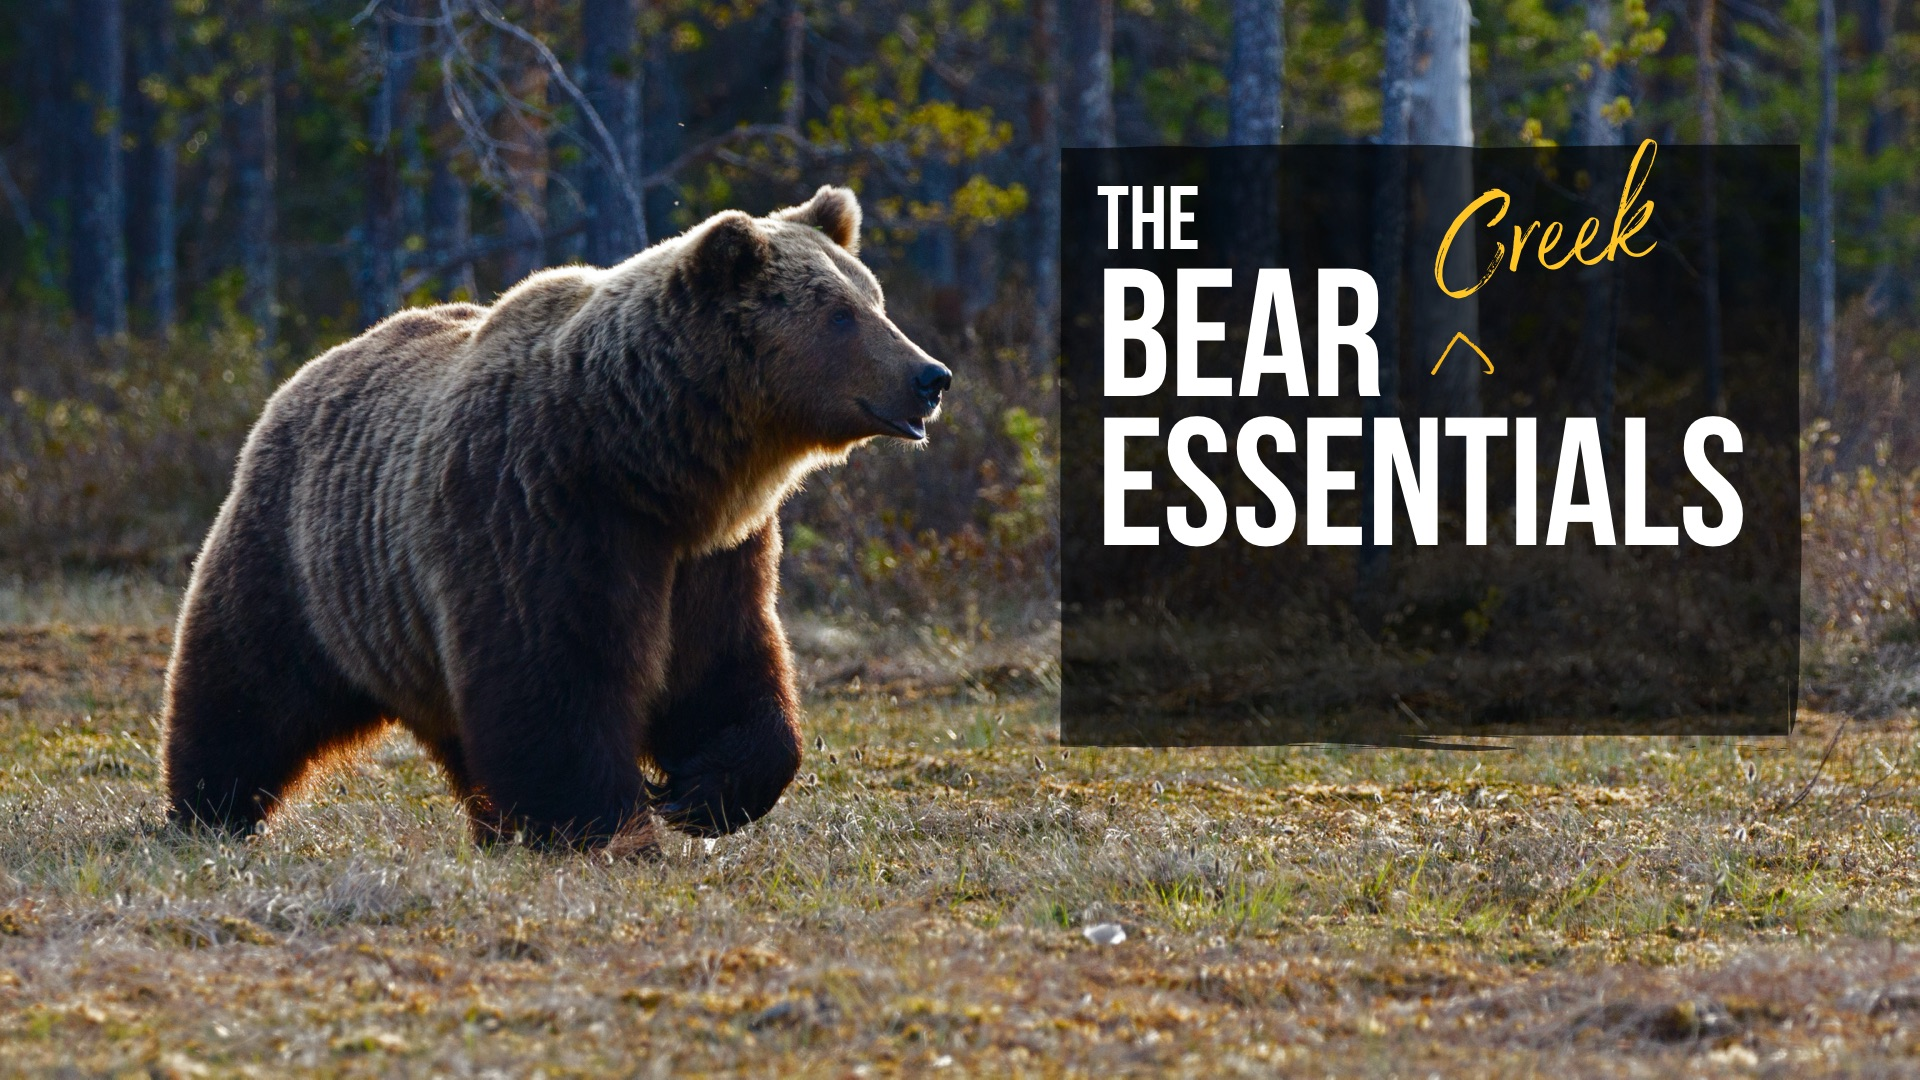 Cover Art for The Bear [Creek] Essentials